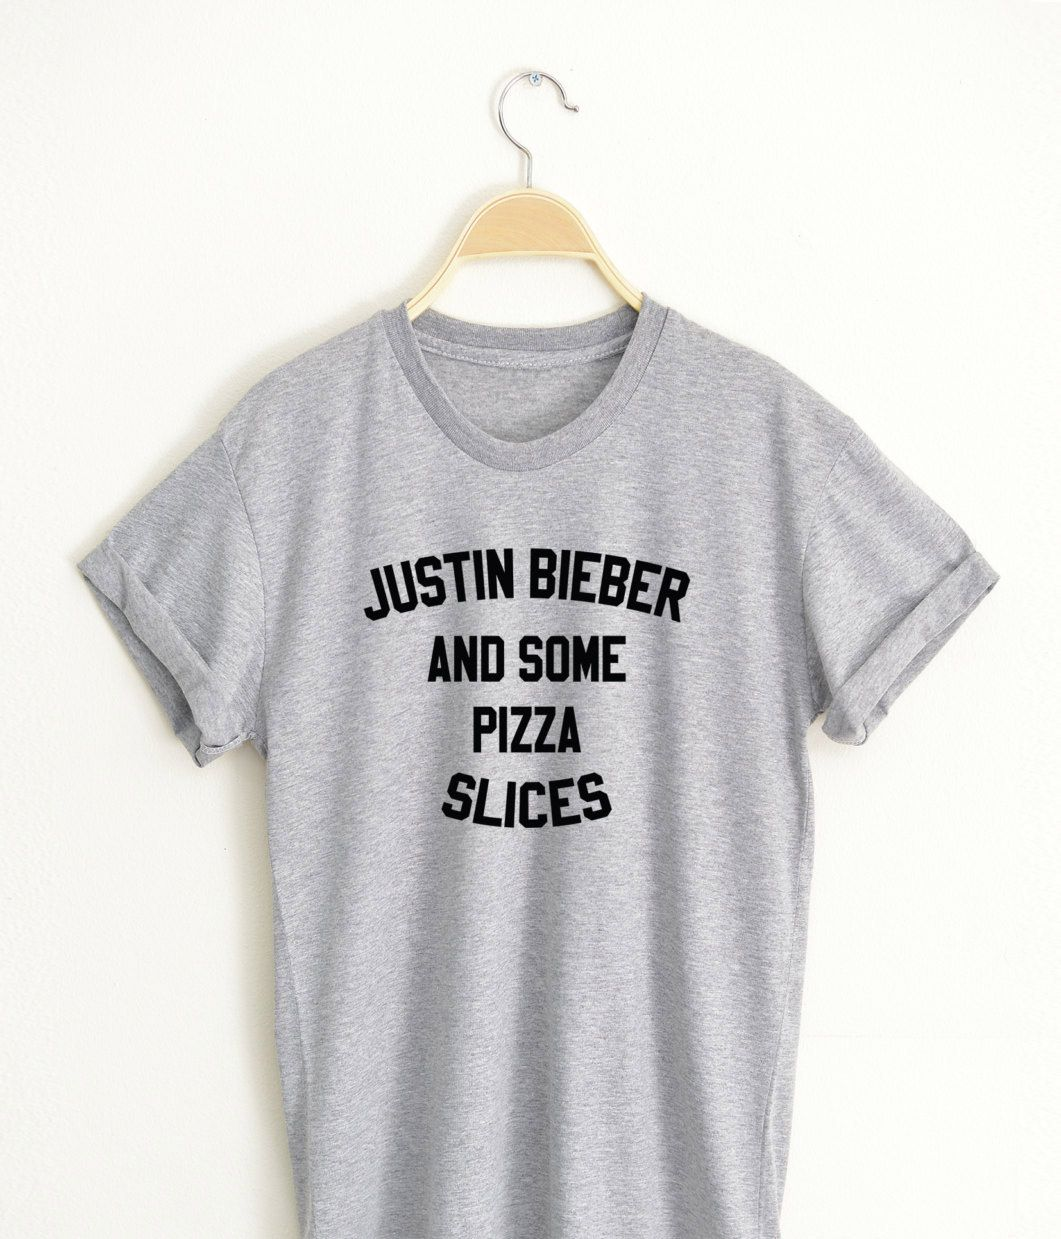 c575f047 JUSTIN BIEBER and Some Pizza Slices T shirt Adult Unisex Size S 3XL